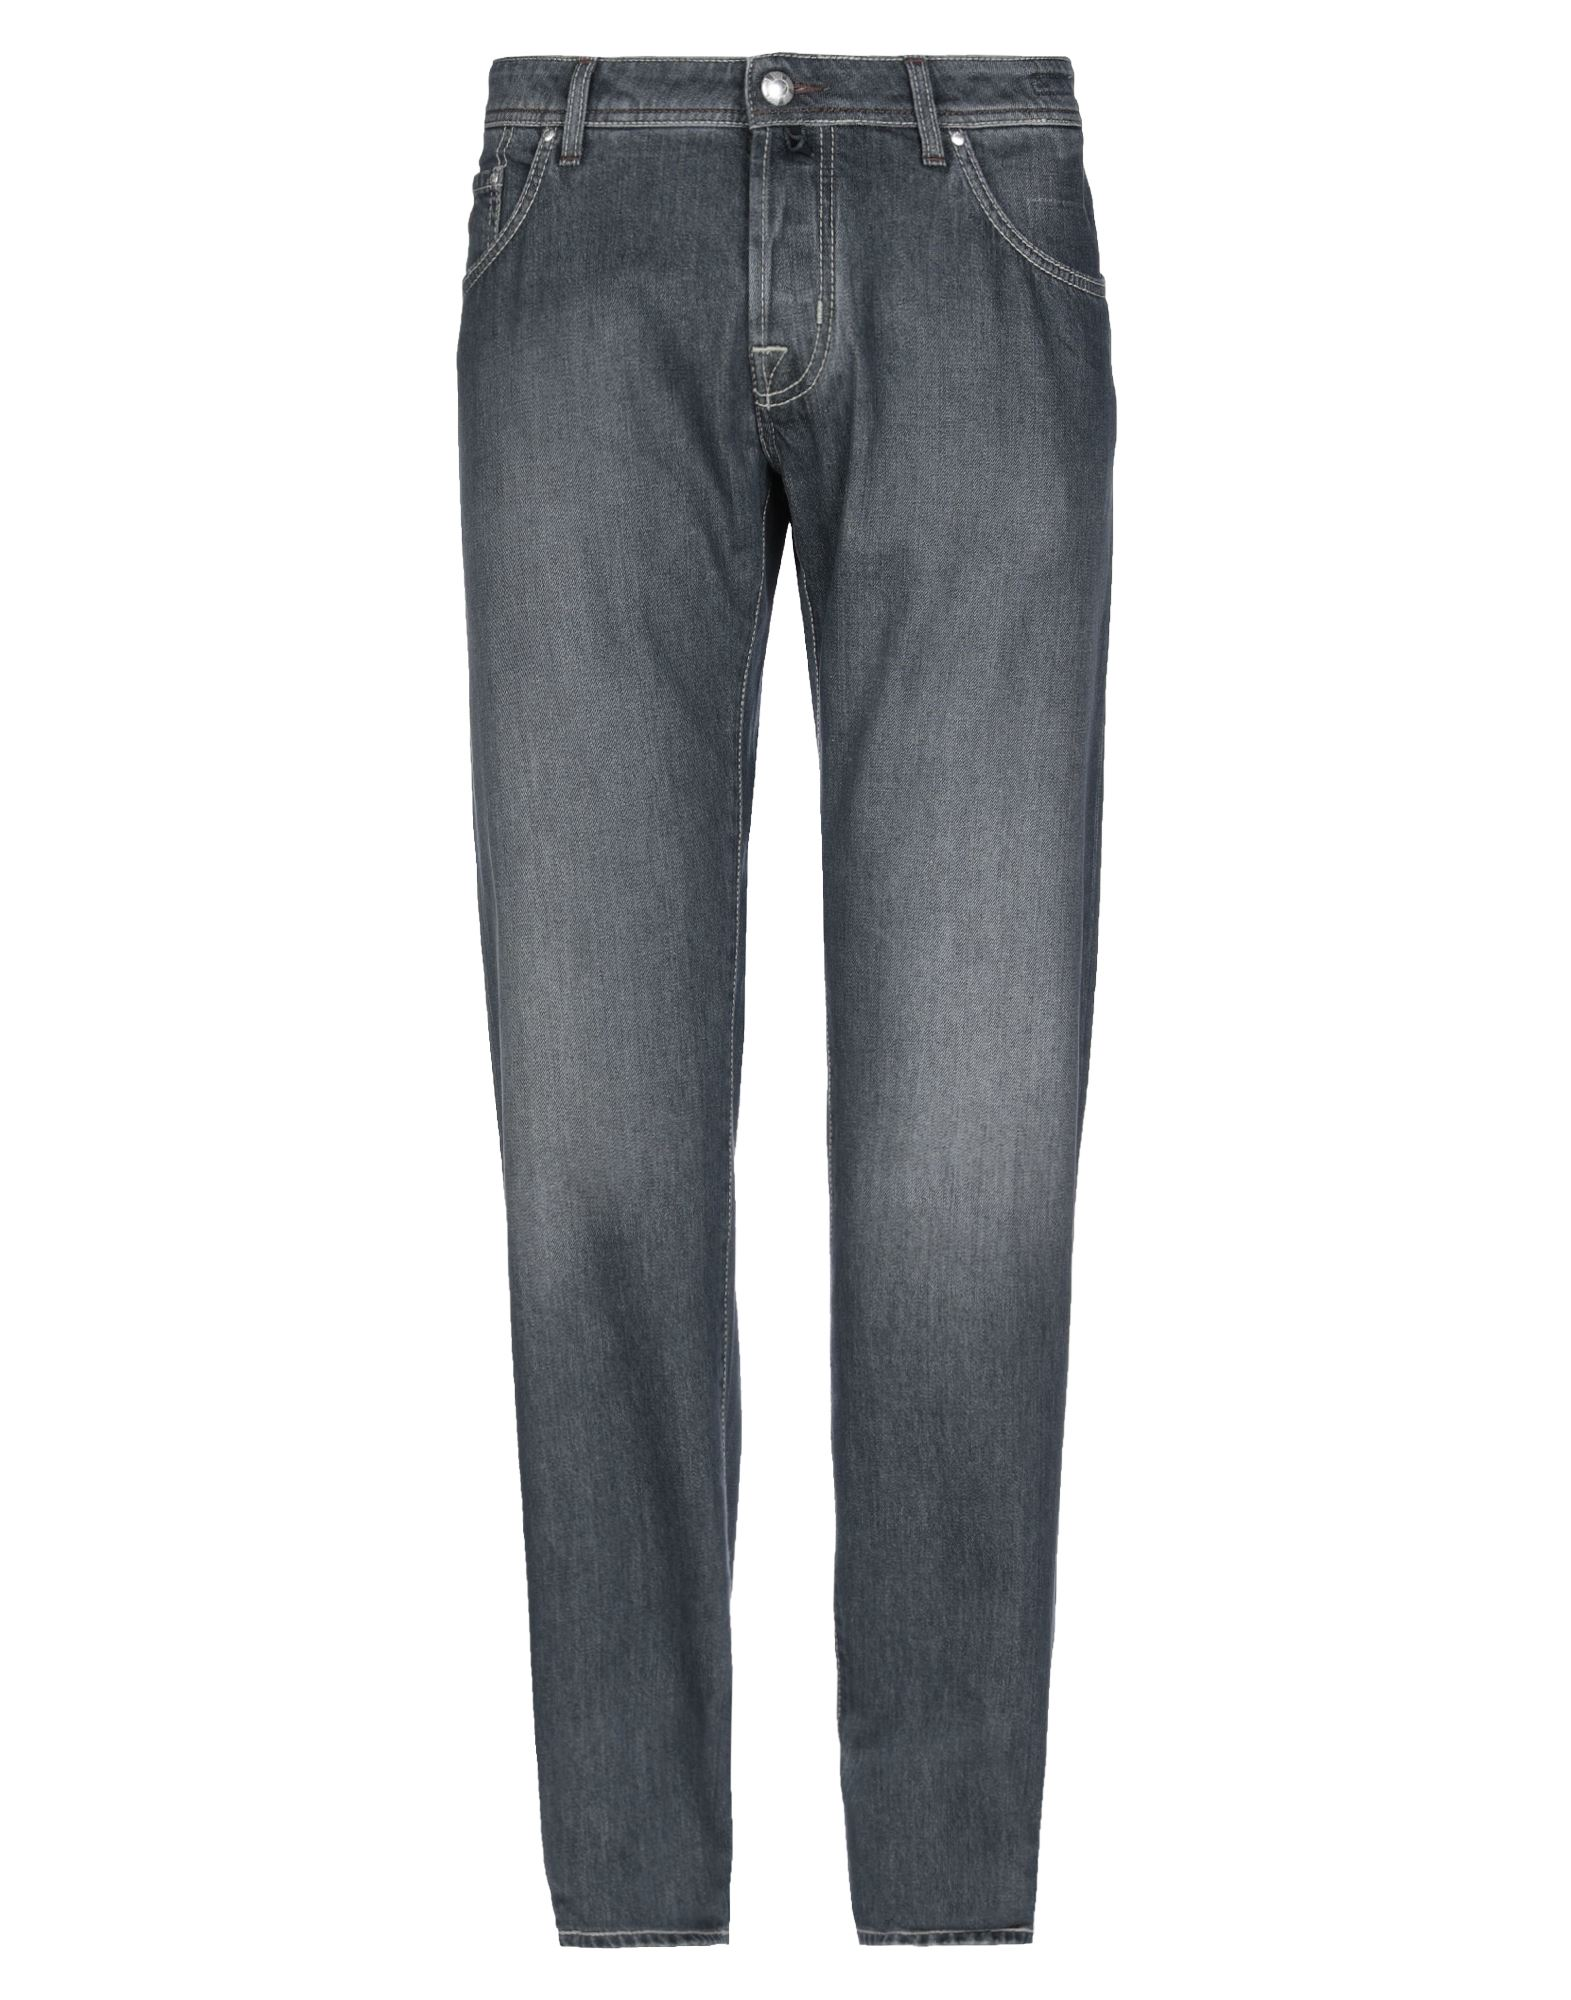 JACOB COHЁN Denim pants - Item 42826519